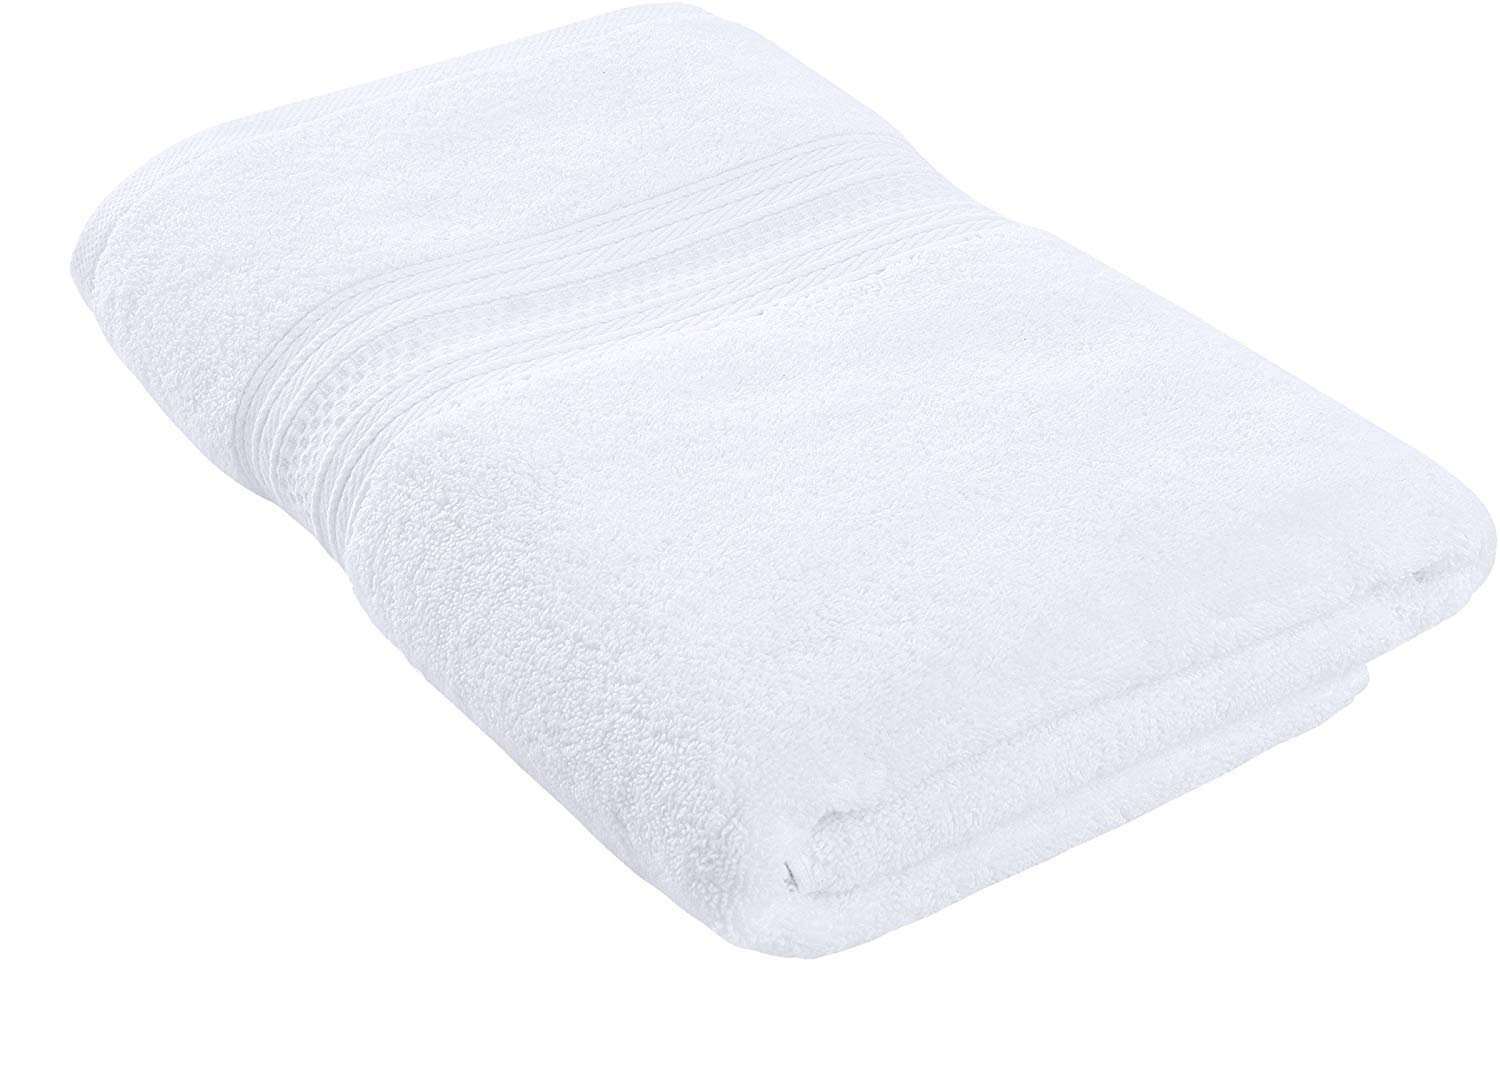 Utopia Towels Pack of 24-700 GSM Premium Cotton Bath Towel (White, 27 x 54 Inches) Luxury Bath Sheet Perfect for Home, Bathrooms, Pool and Gym Ring-Spun Cotton (White) by Utopia Towels (Image #5)